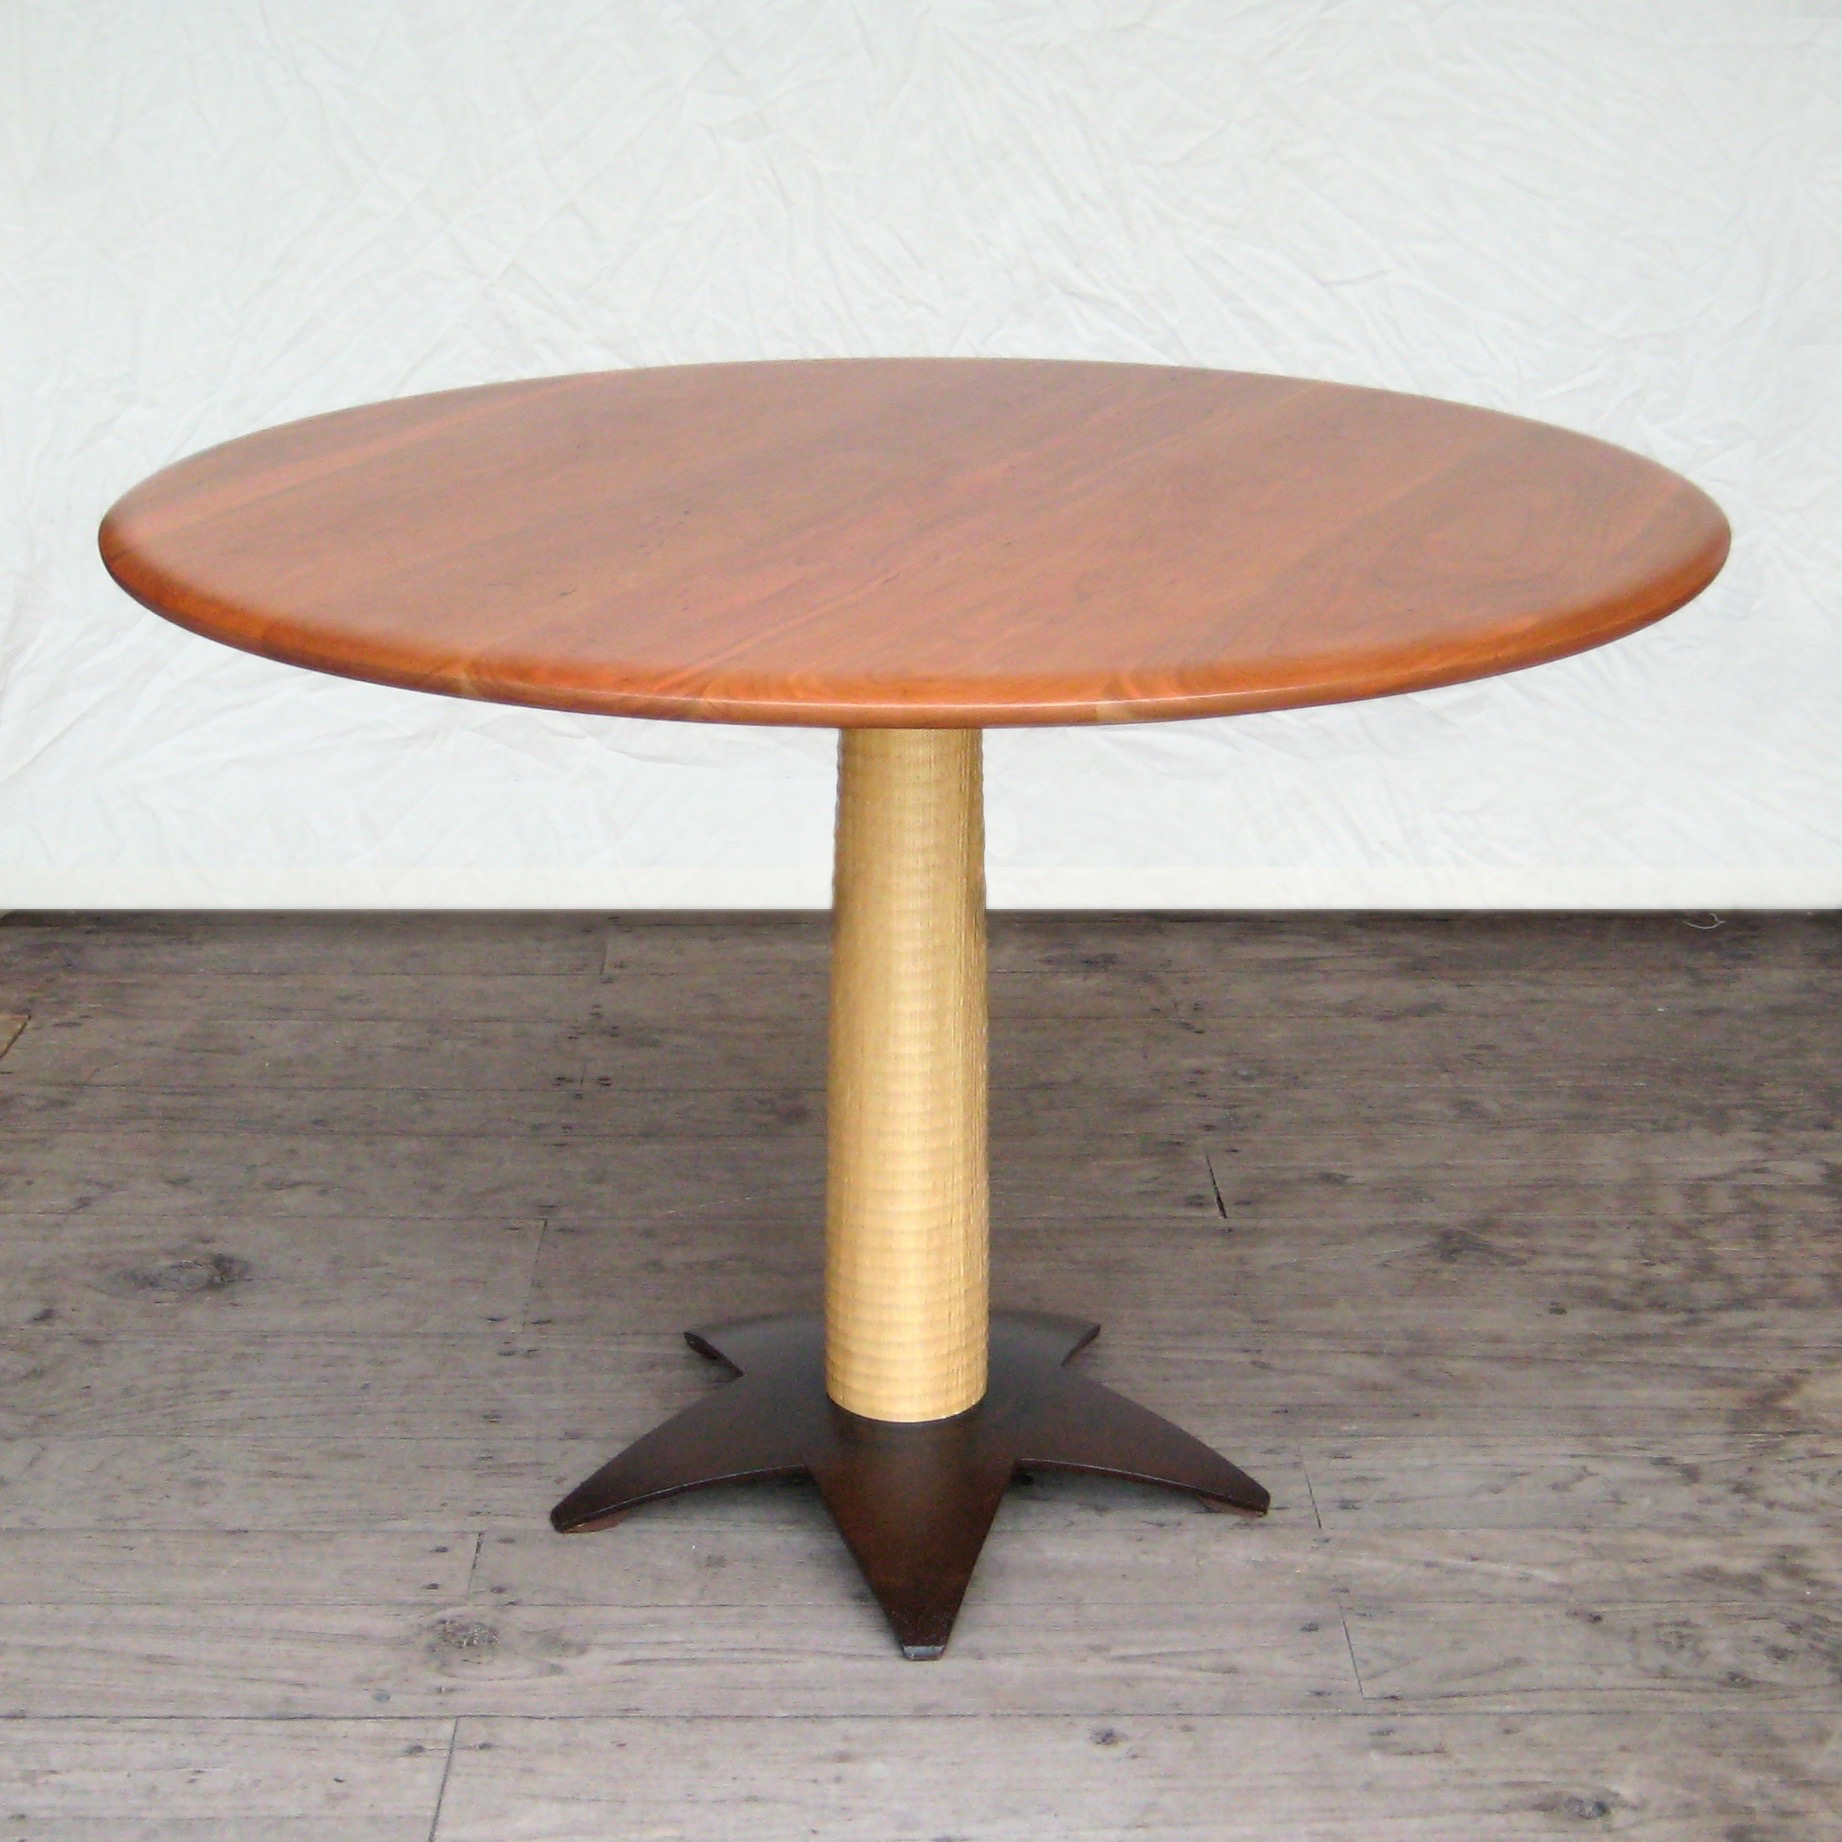 pedestal-table-star-base-003.jpg